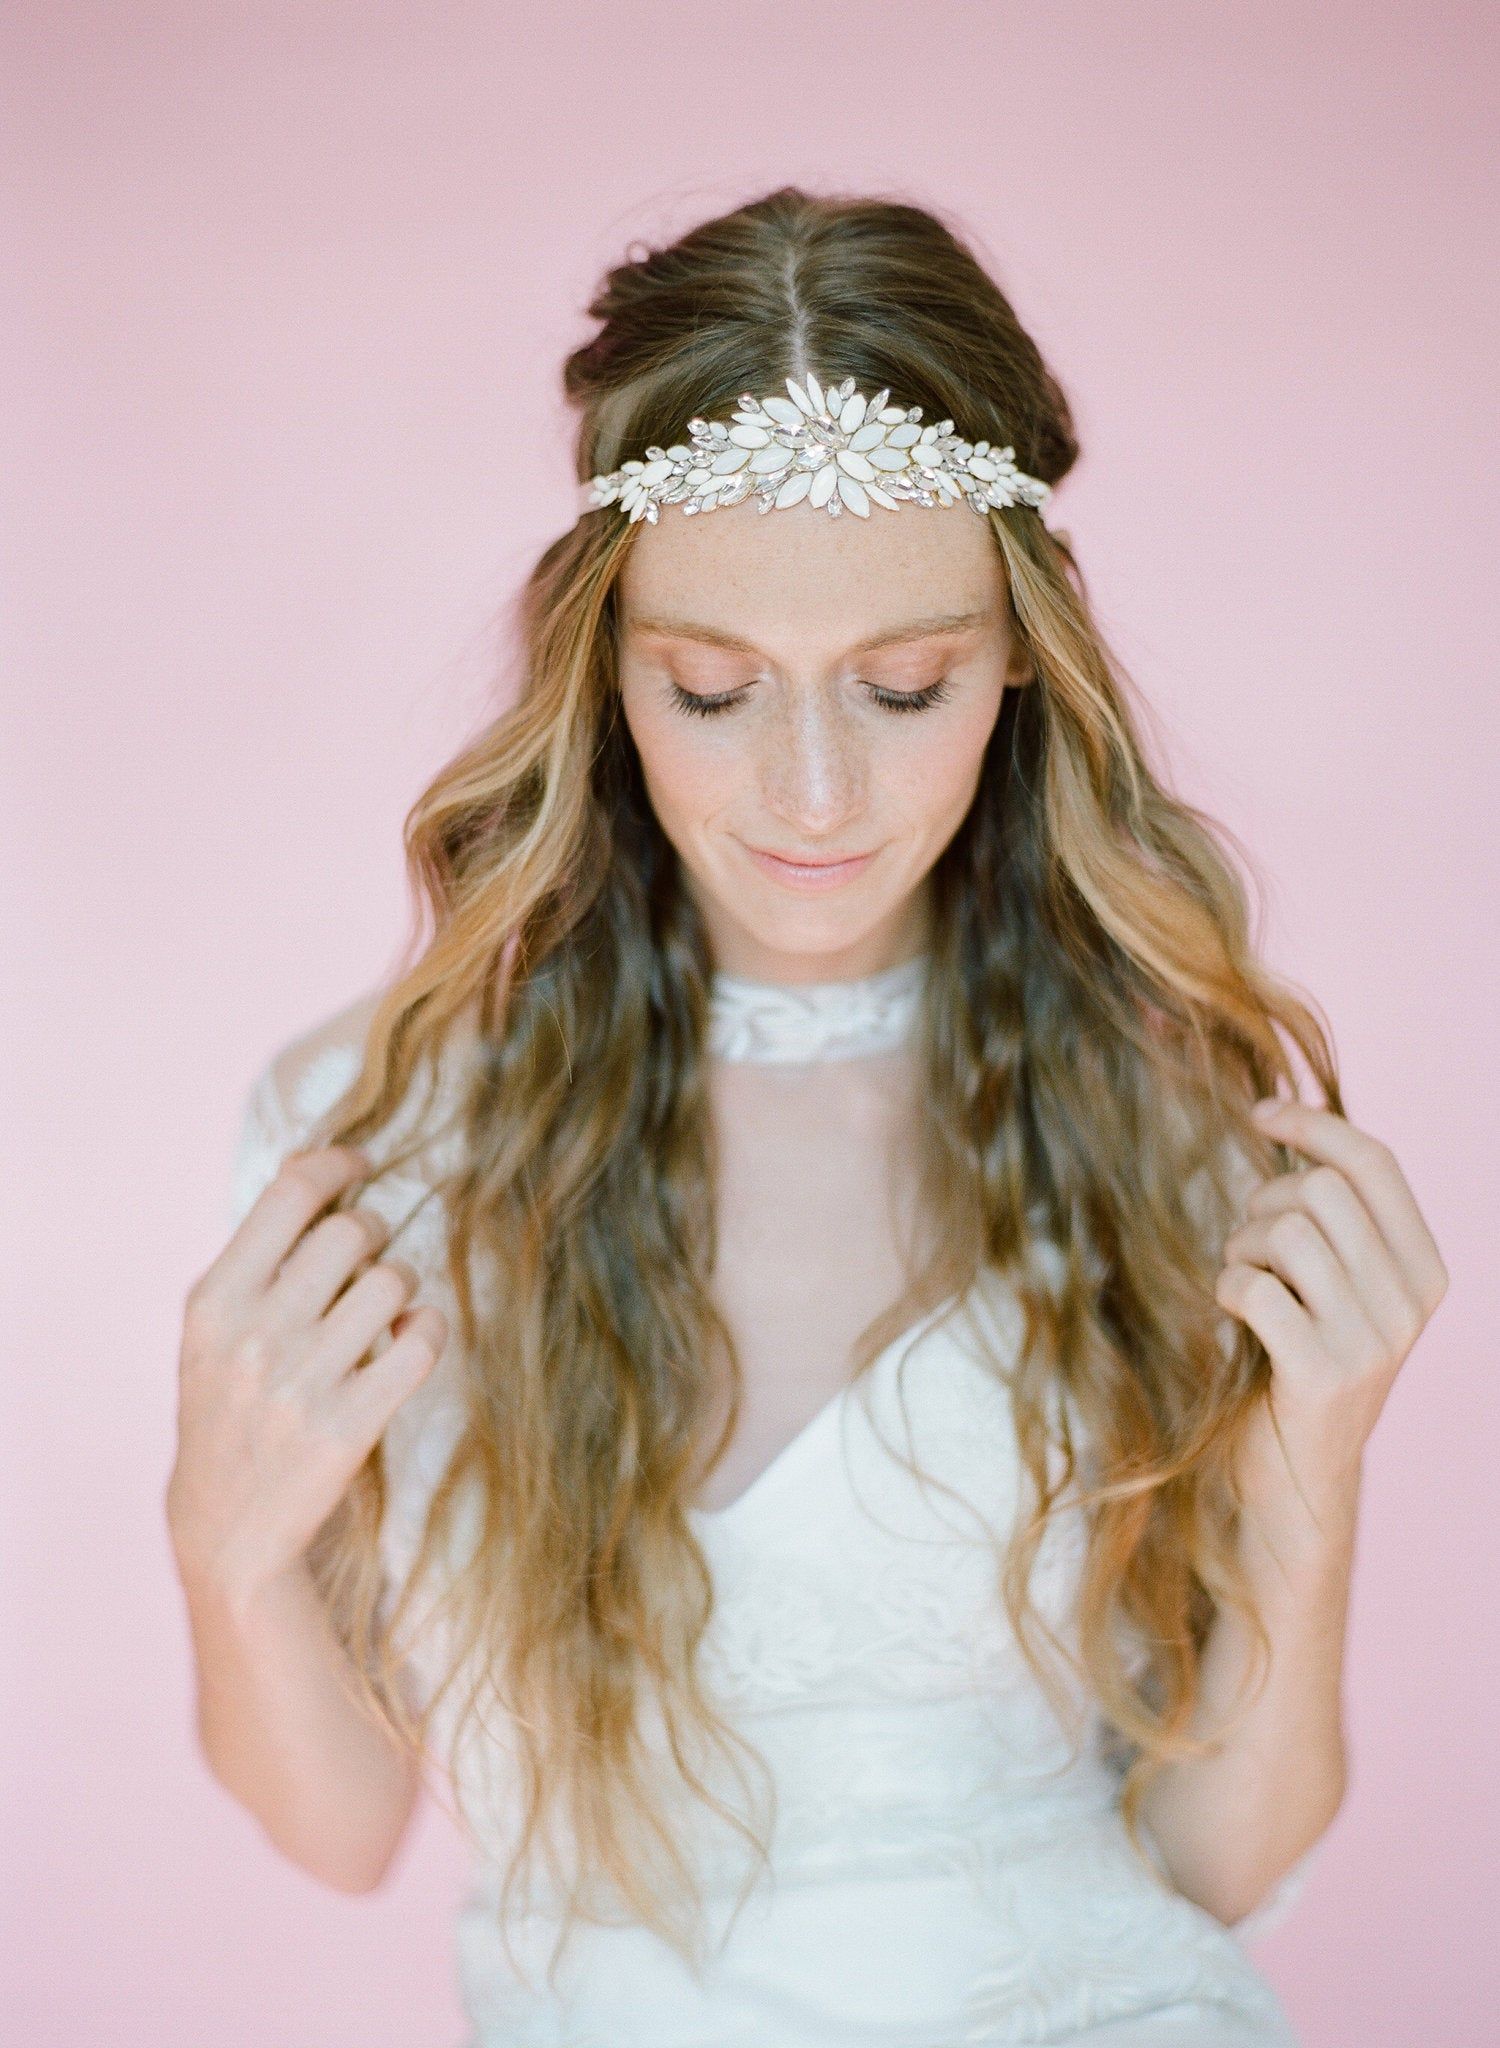 Darby-Hair Adornments-Hushed Commotion